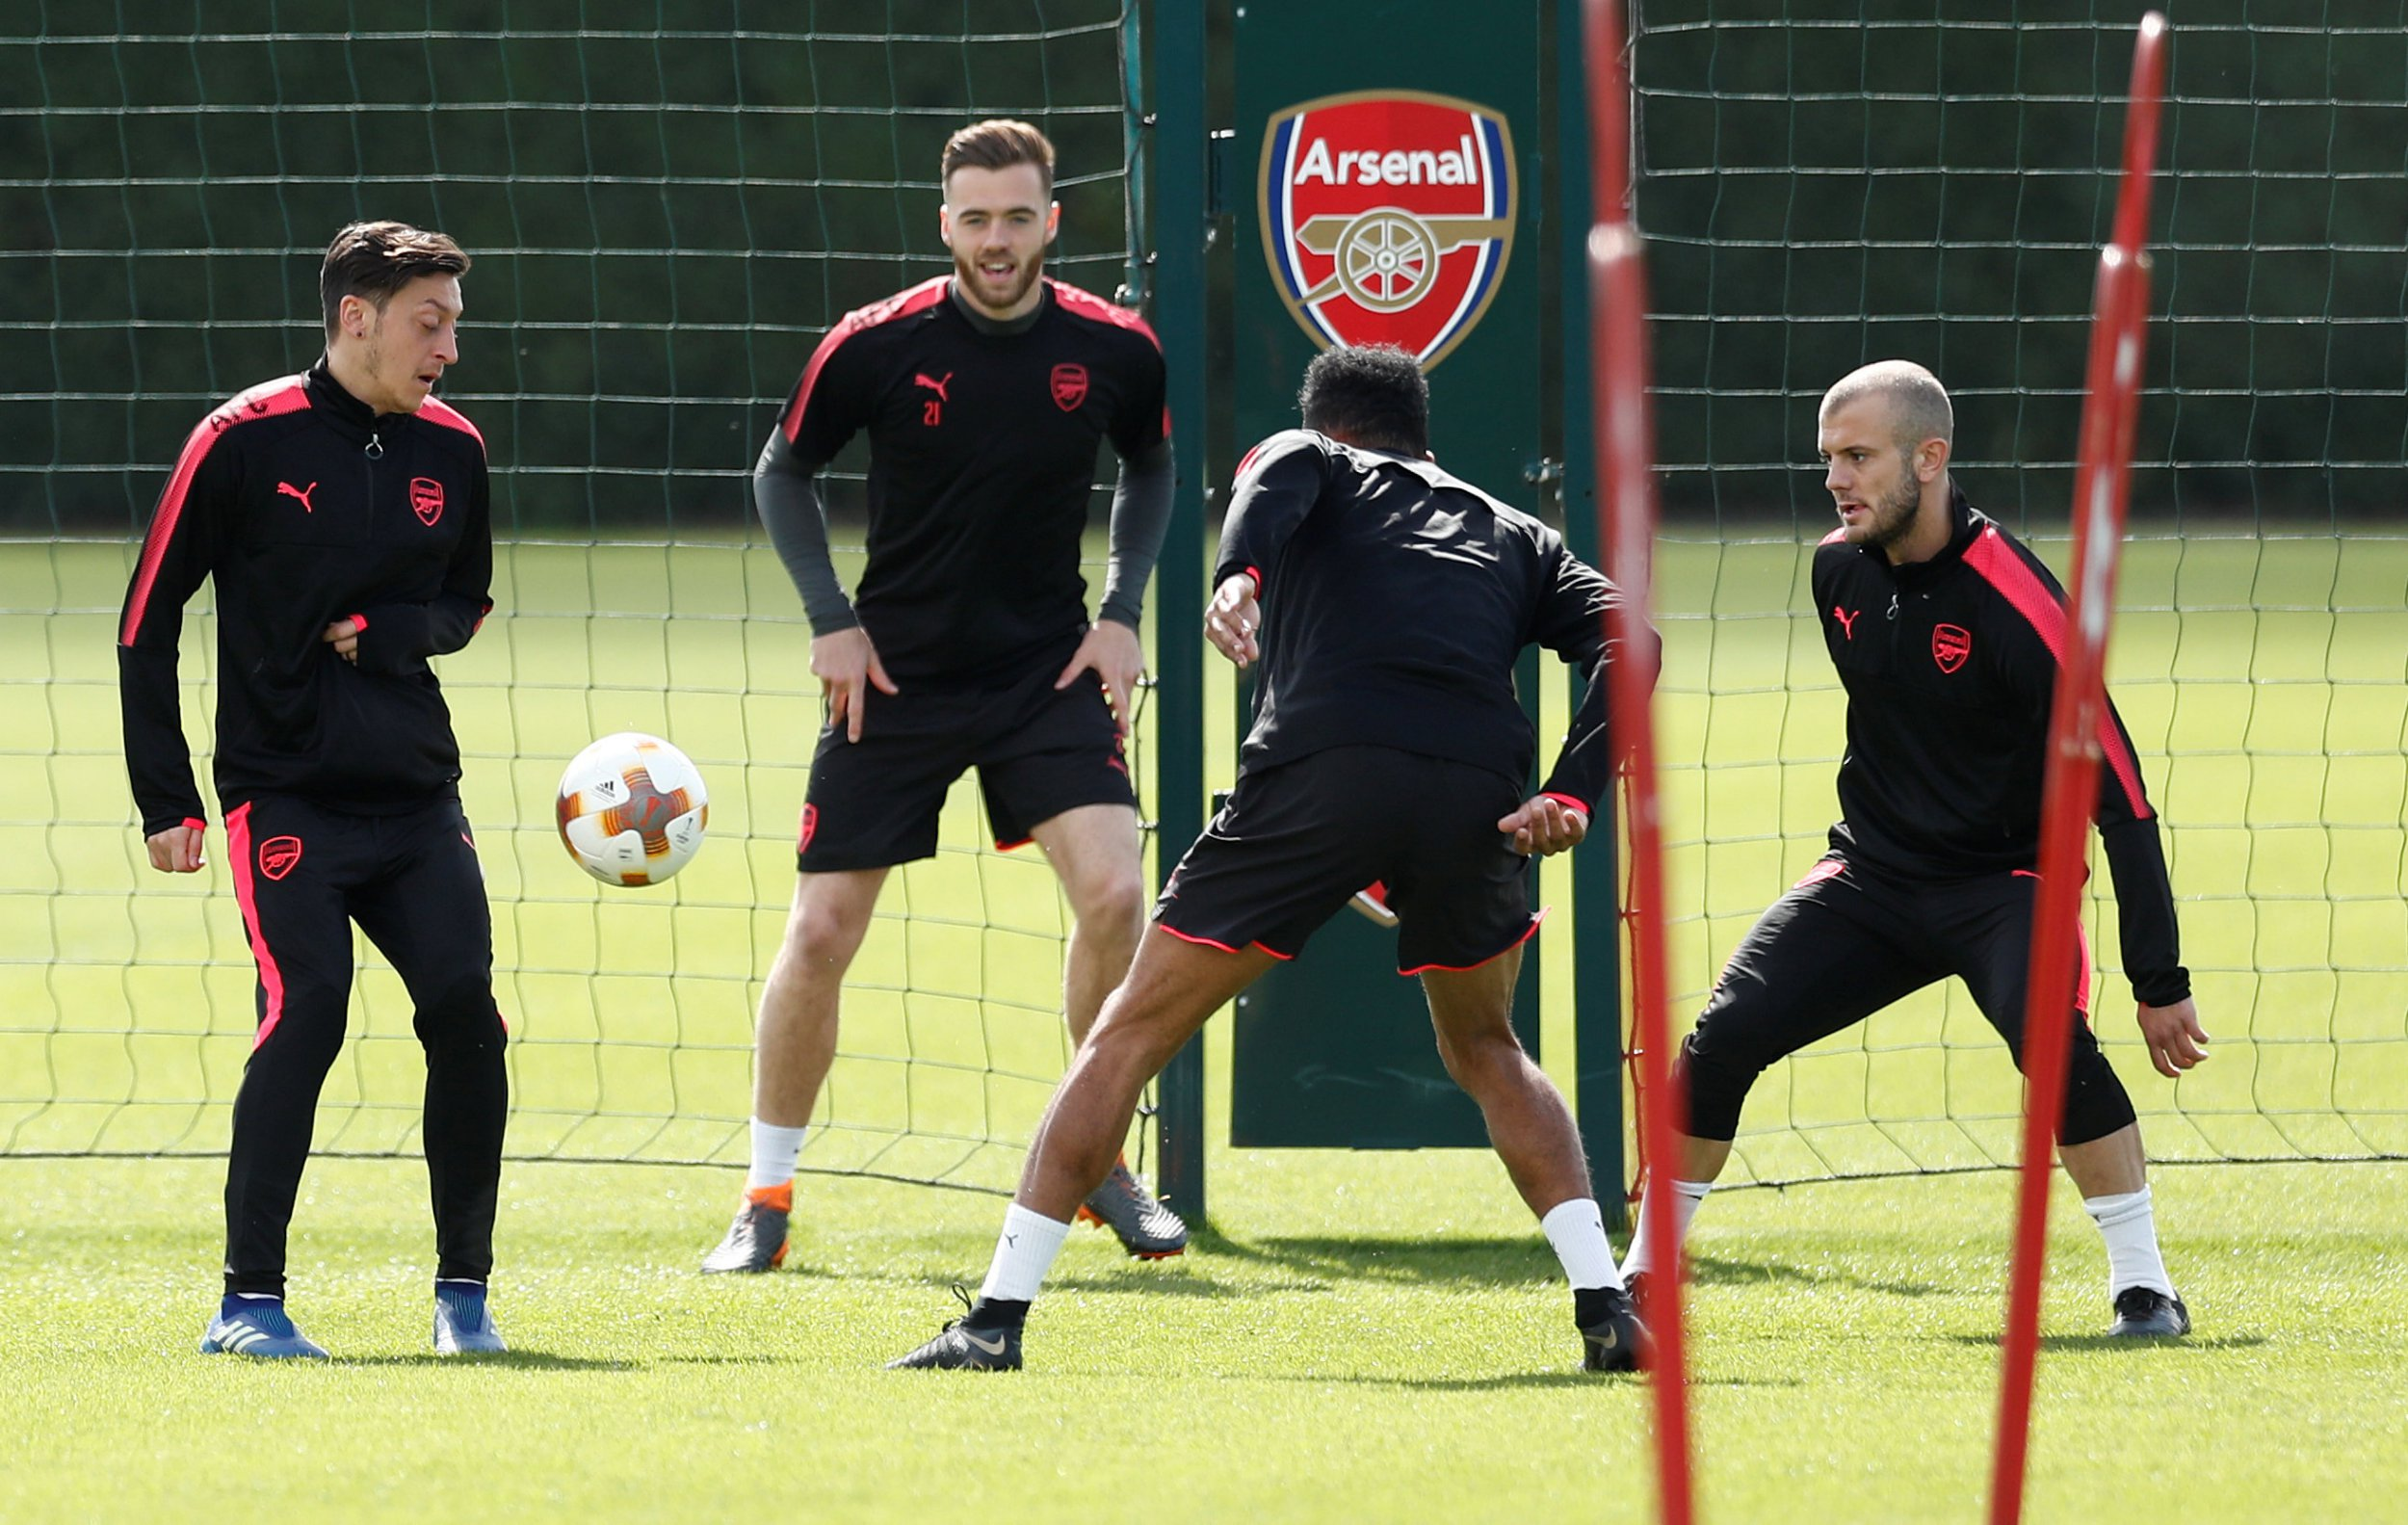 Mesut Ozil, Jack Wilshere and Petr Cech train ahead of Arsenal's Europa League clash with Atletico Madrid